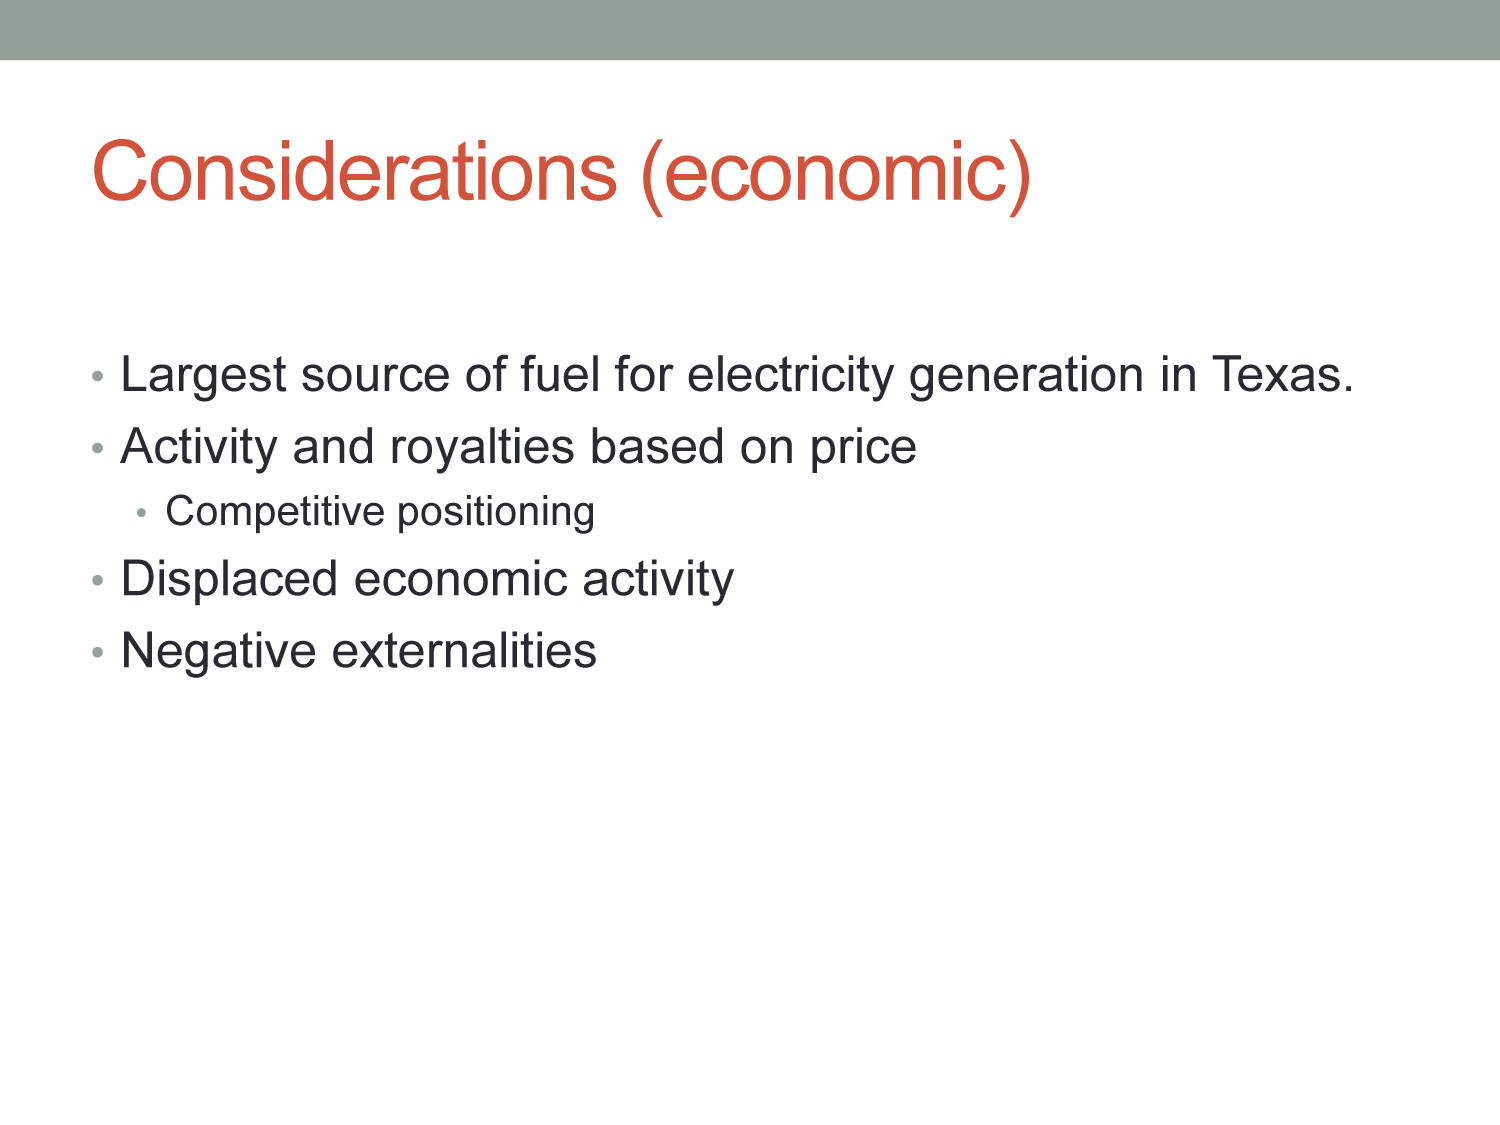 Economic Impacts of the Natural Gas Industry in North Texas                                                                                                      [Sequence #]: 6 of 11